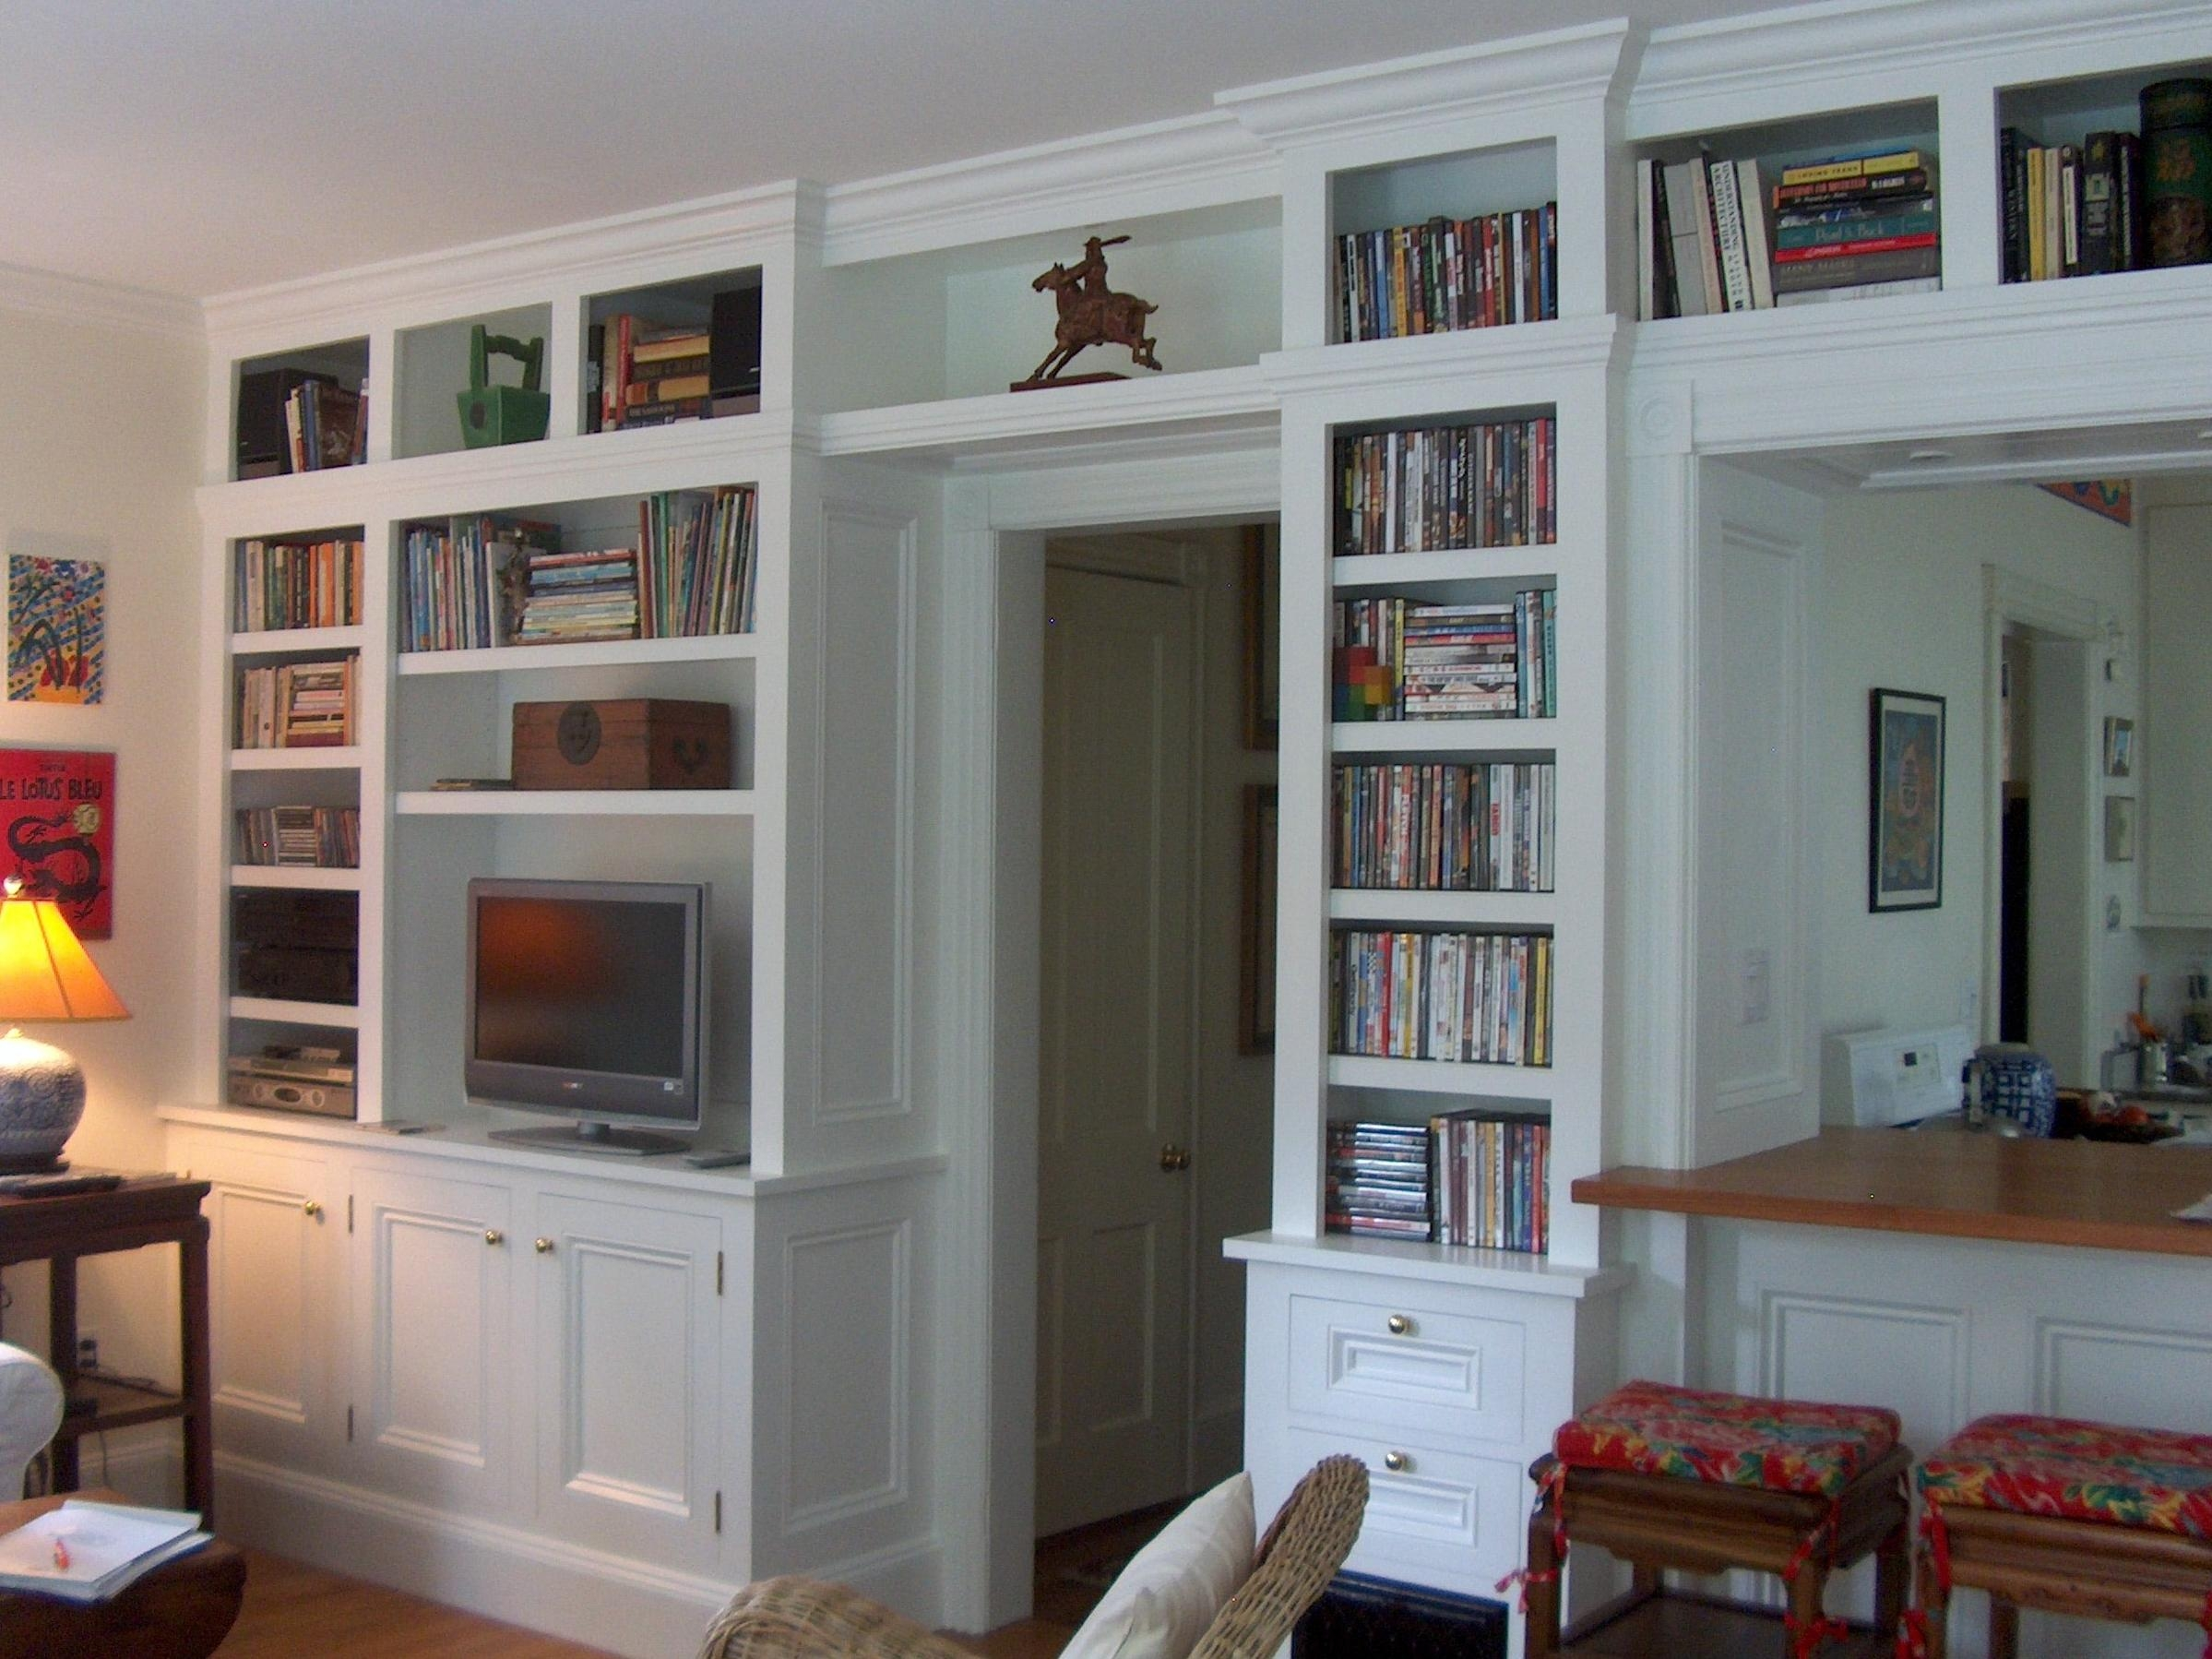 Appealing Built In Bookcase Kits 40 Built In Bookcase Kits Custom Inside Built In Bookshelf Kits (View 1 of 15)